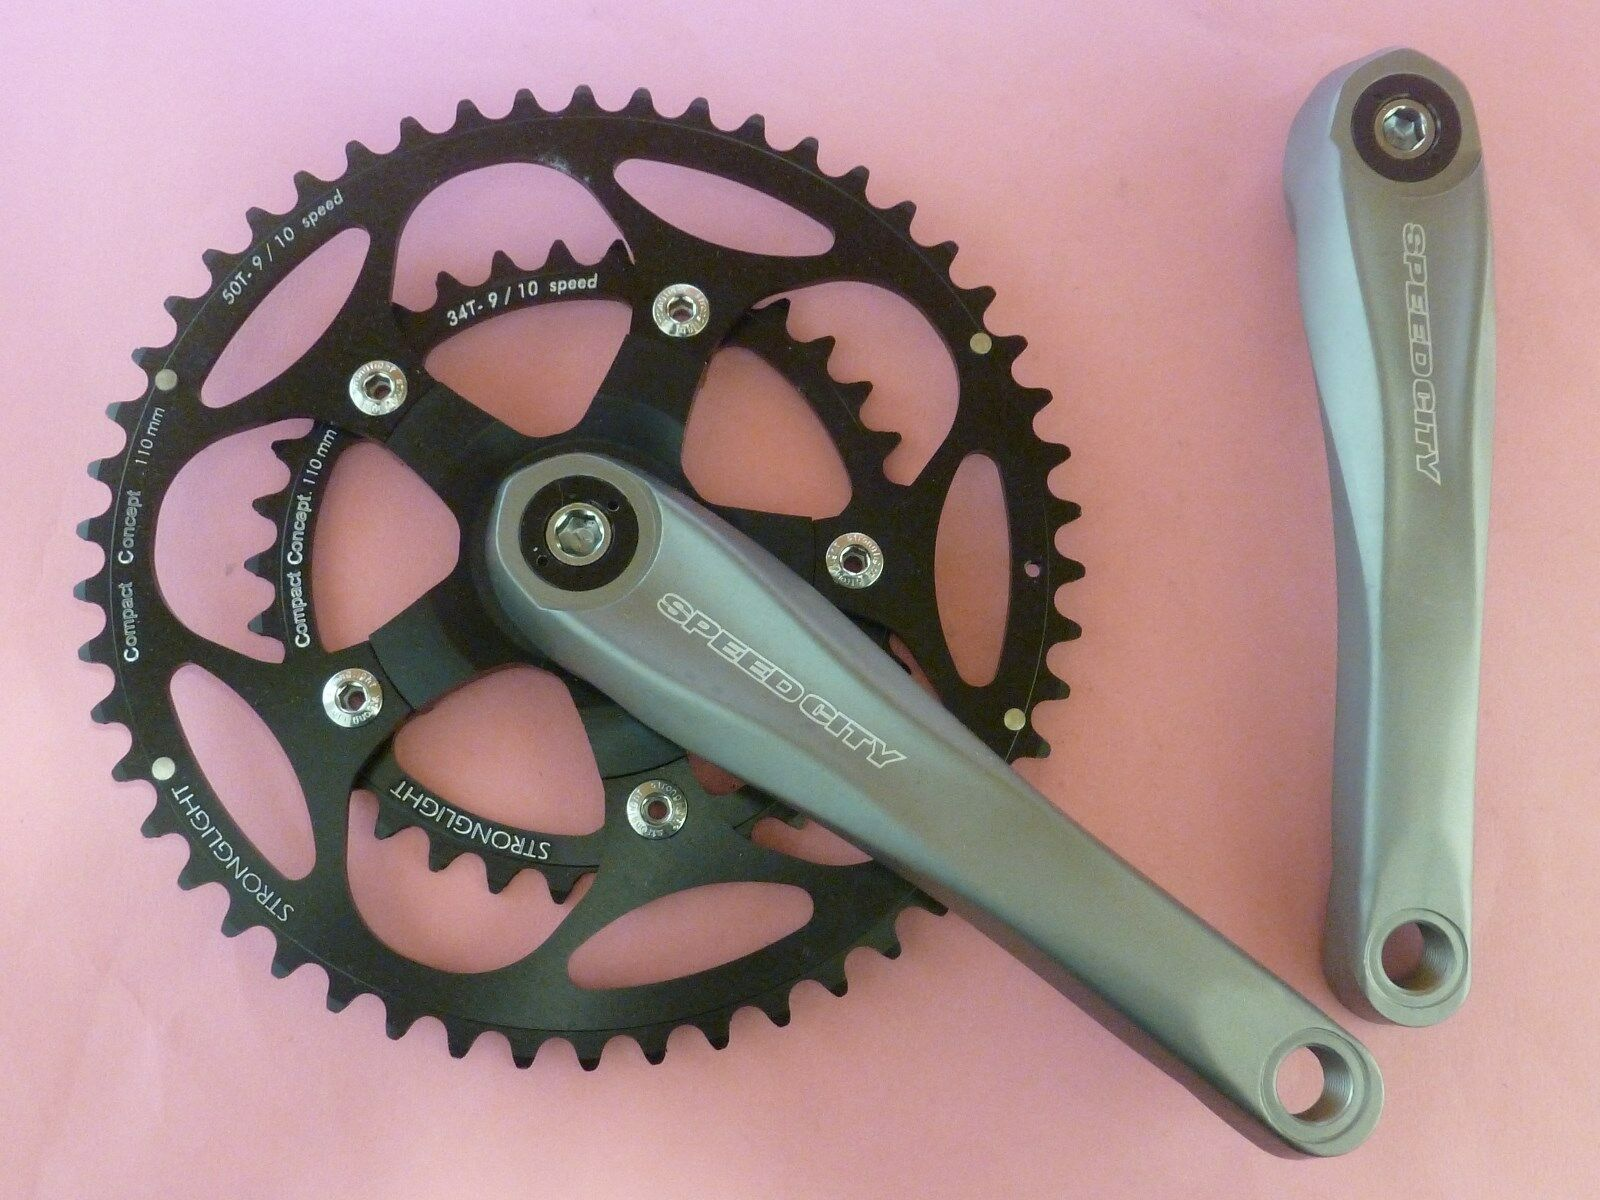 Stronglight Speedcity 170 - 34.50 bicycle chainset - NOS